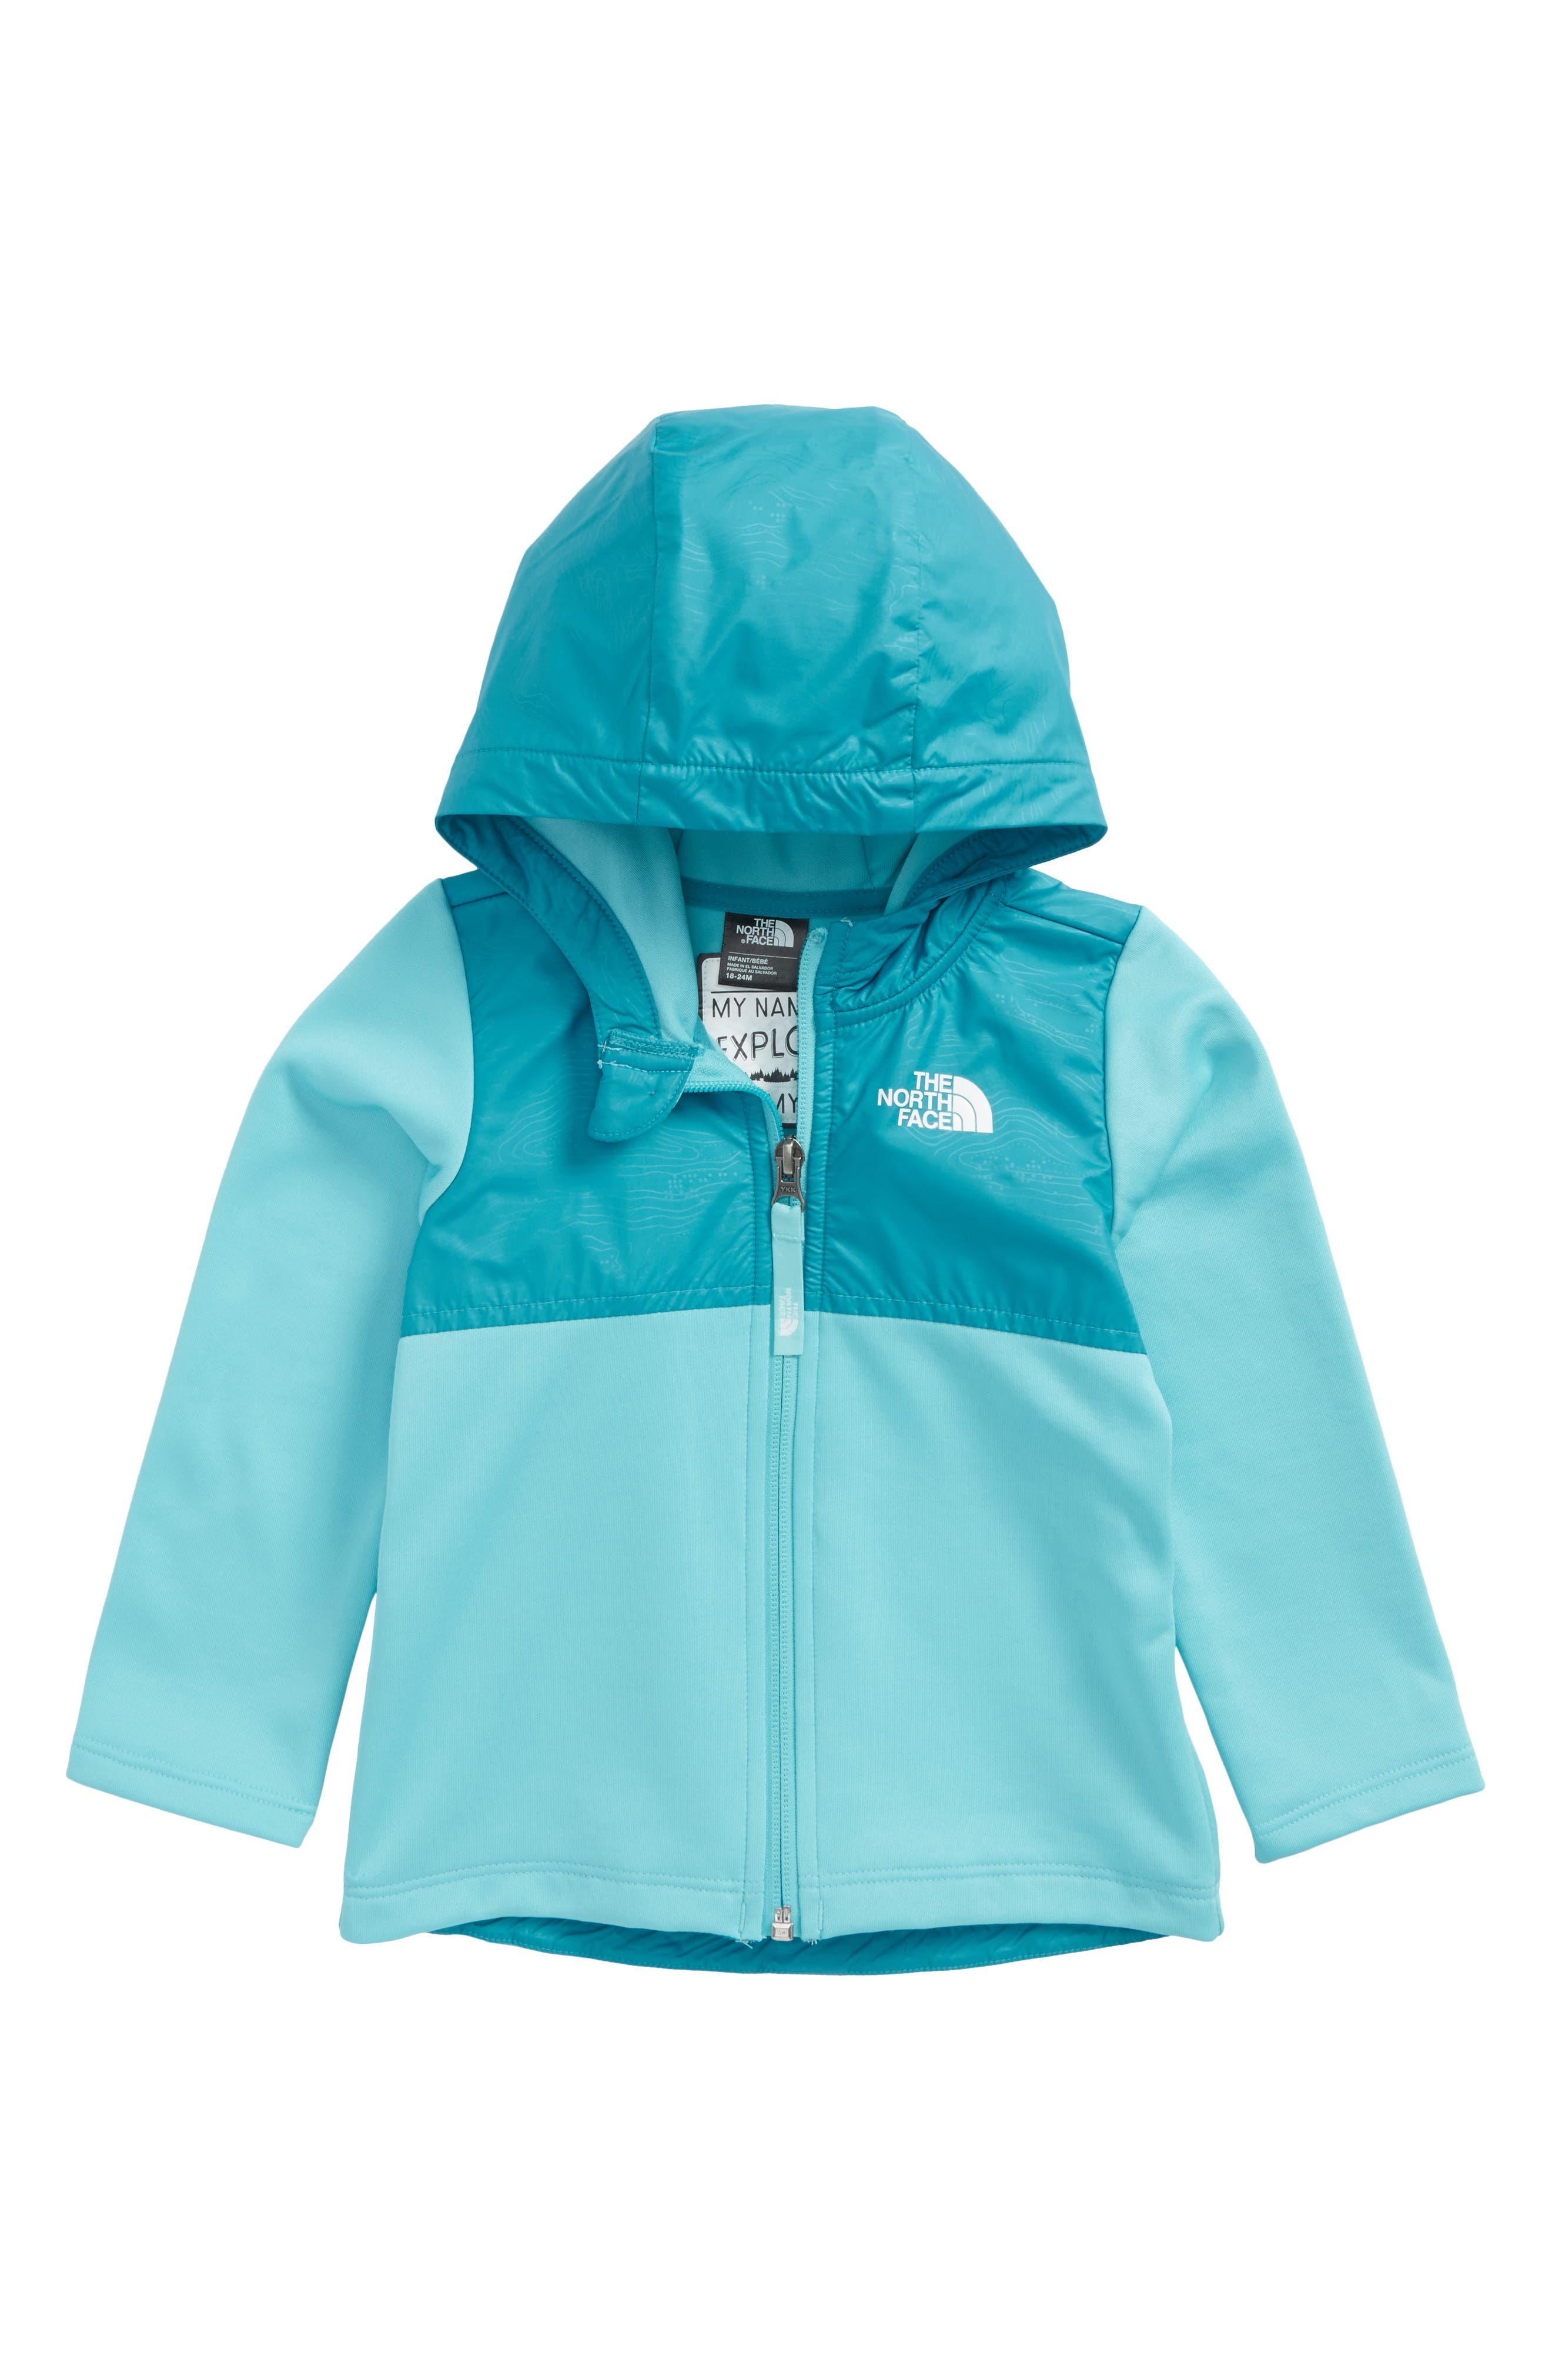 Main Image - The North Face Kickin' It Hoodie (Baby)